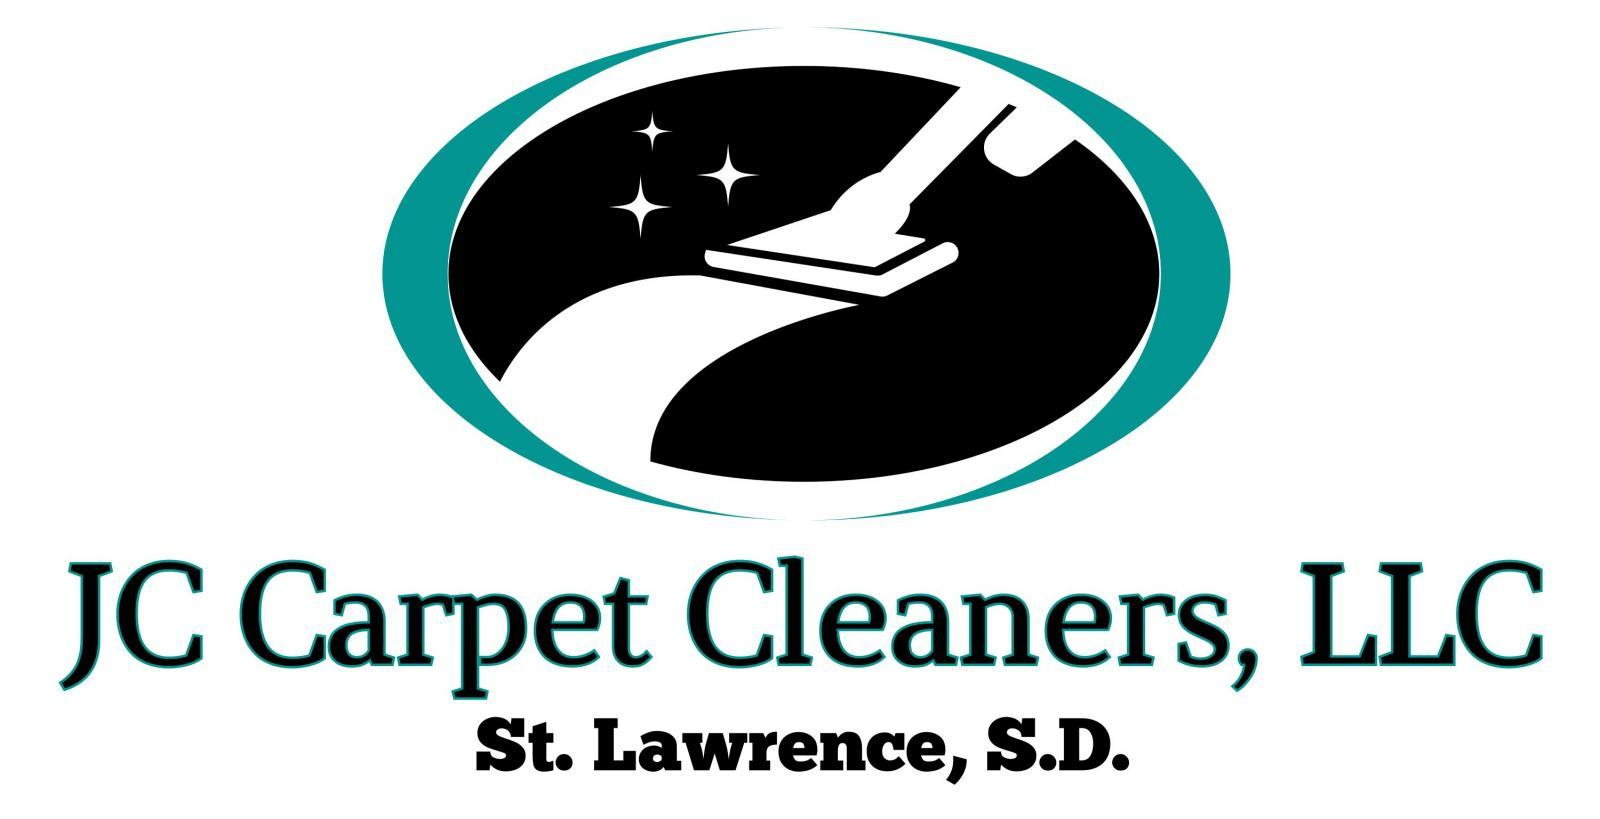 JC Carpet Cleaners image